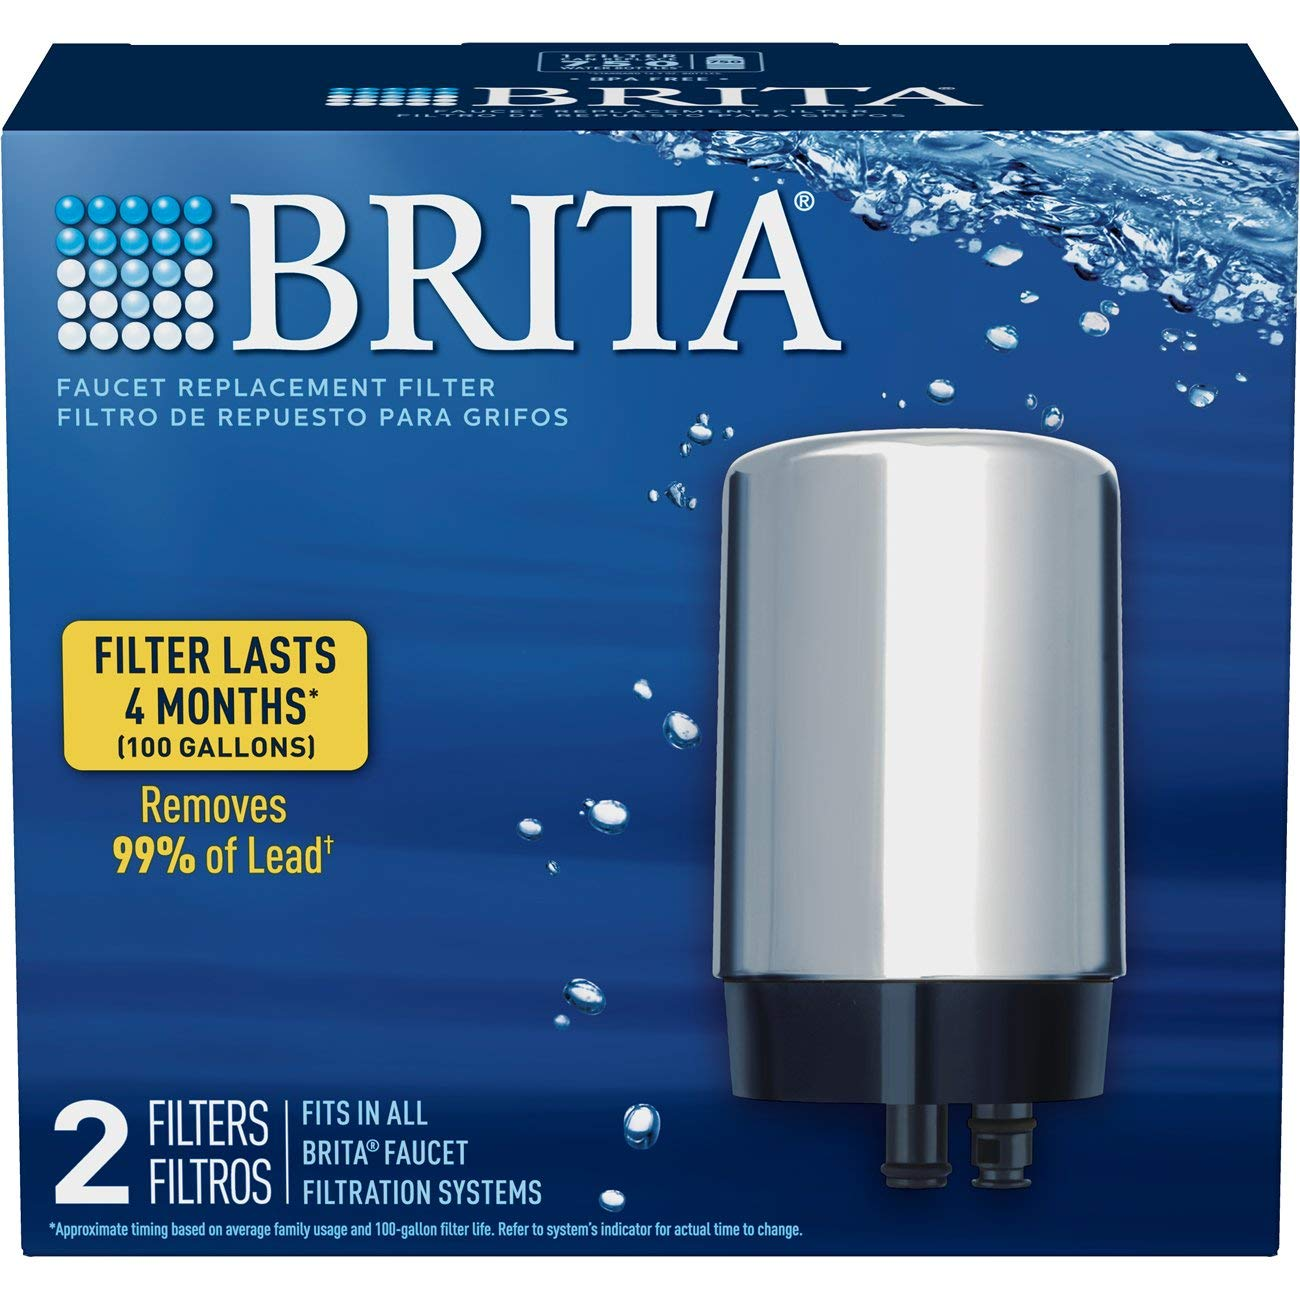 Brita Tap Water Filter, Water Filtration System Replacement Filters For Faucets, Reduces Lead, BPA Free – Chrome, 2 Count by Brita (Image #2)